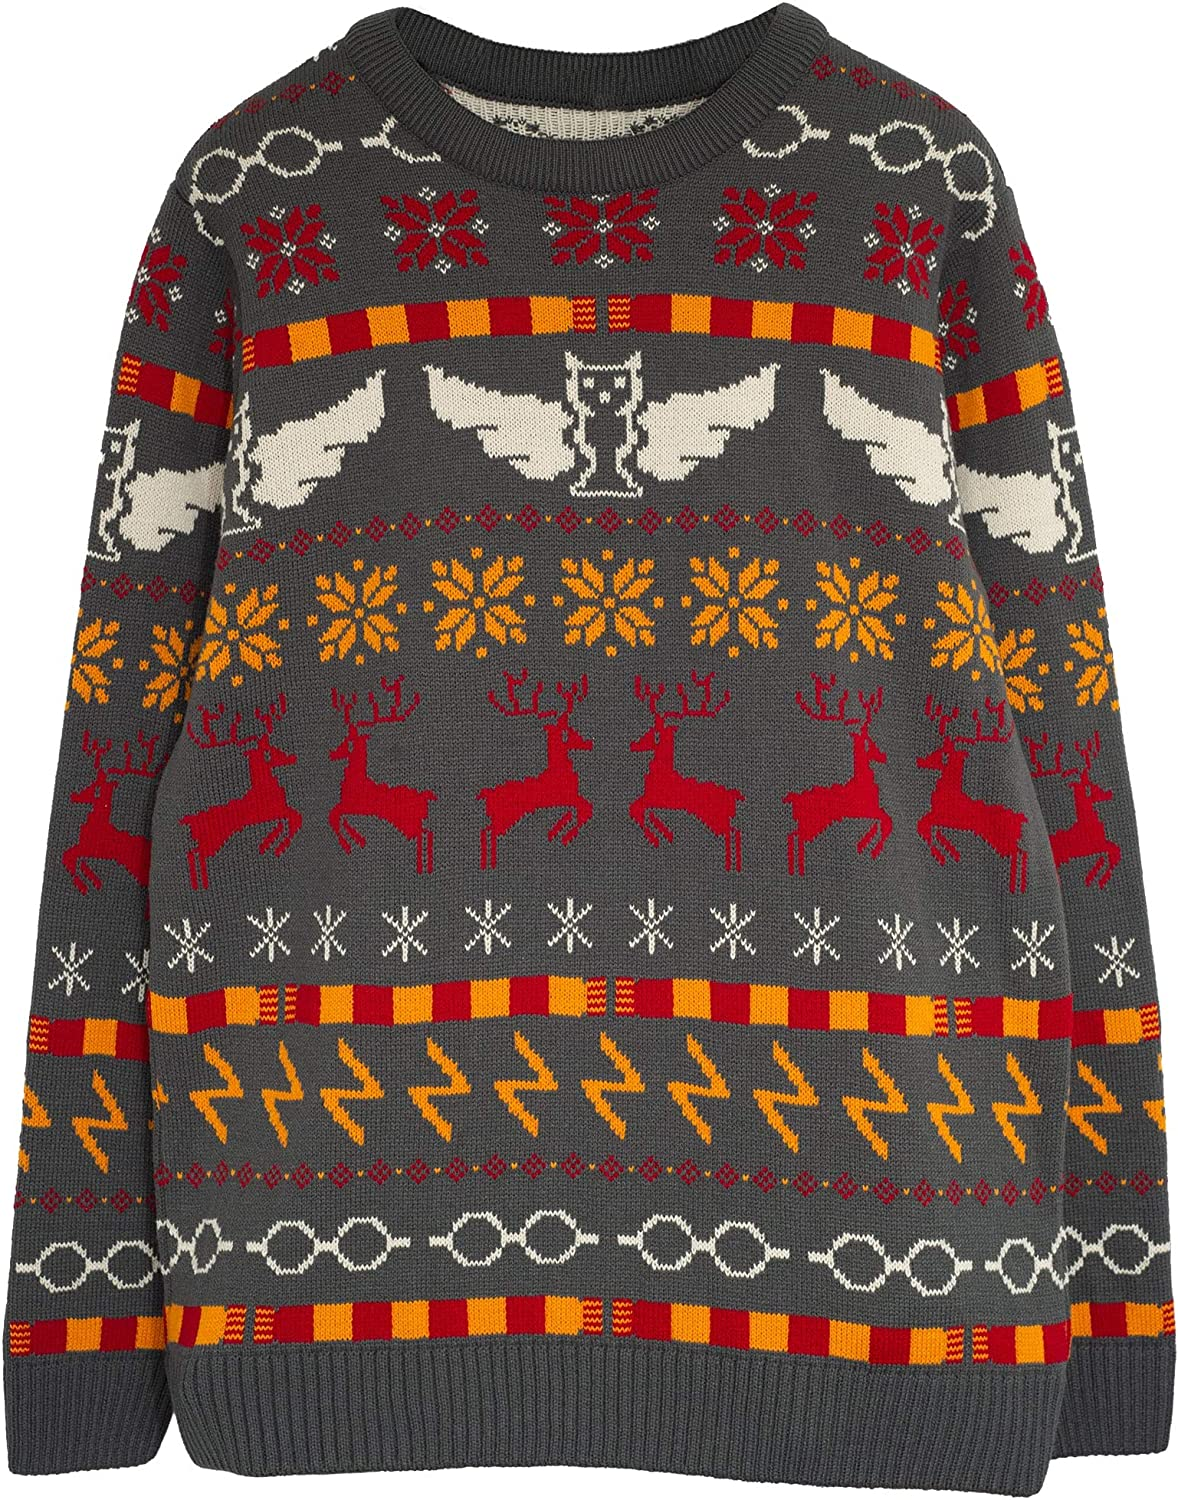 Ugly Sweater Gift Idea Marvel Comics Hero Icons Boys Knitted Jumper Official Merchandise